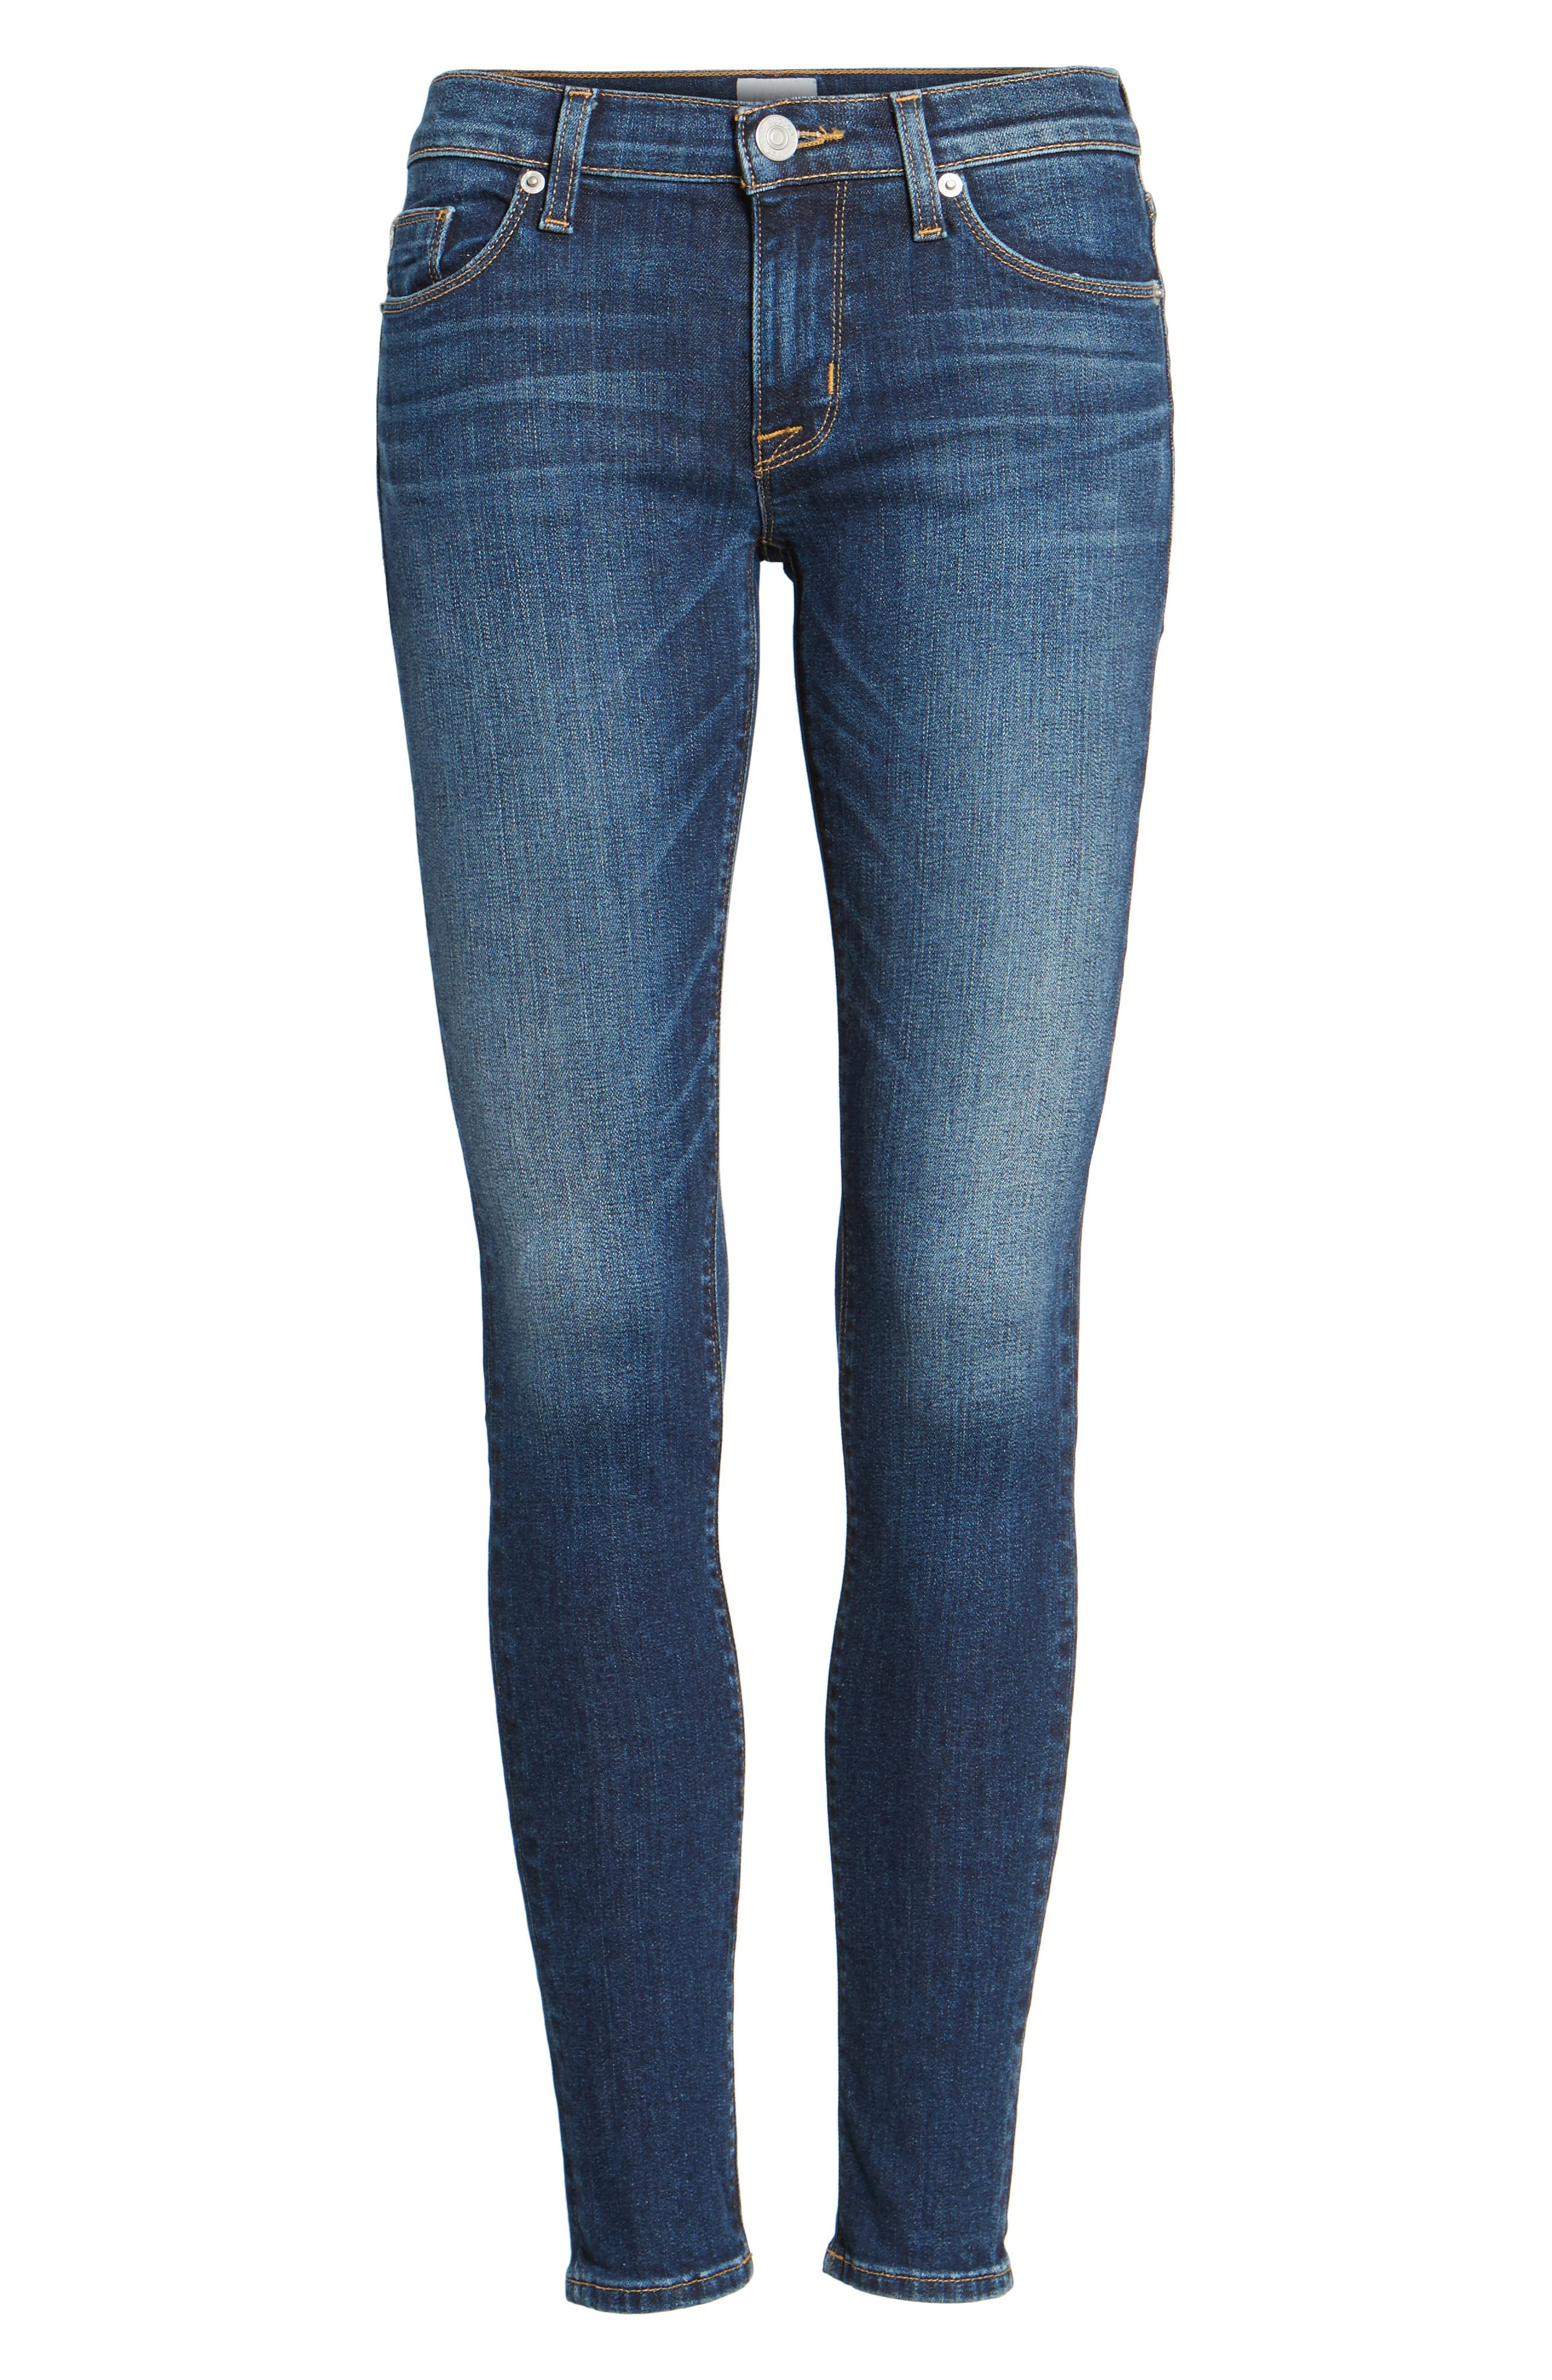 'Krista' Super Skinny Jeans,                             Alternate thumbnail 7, color,                             SOLO